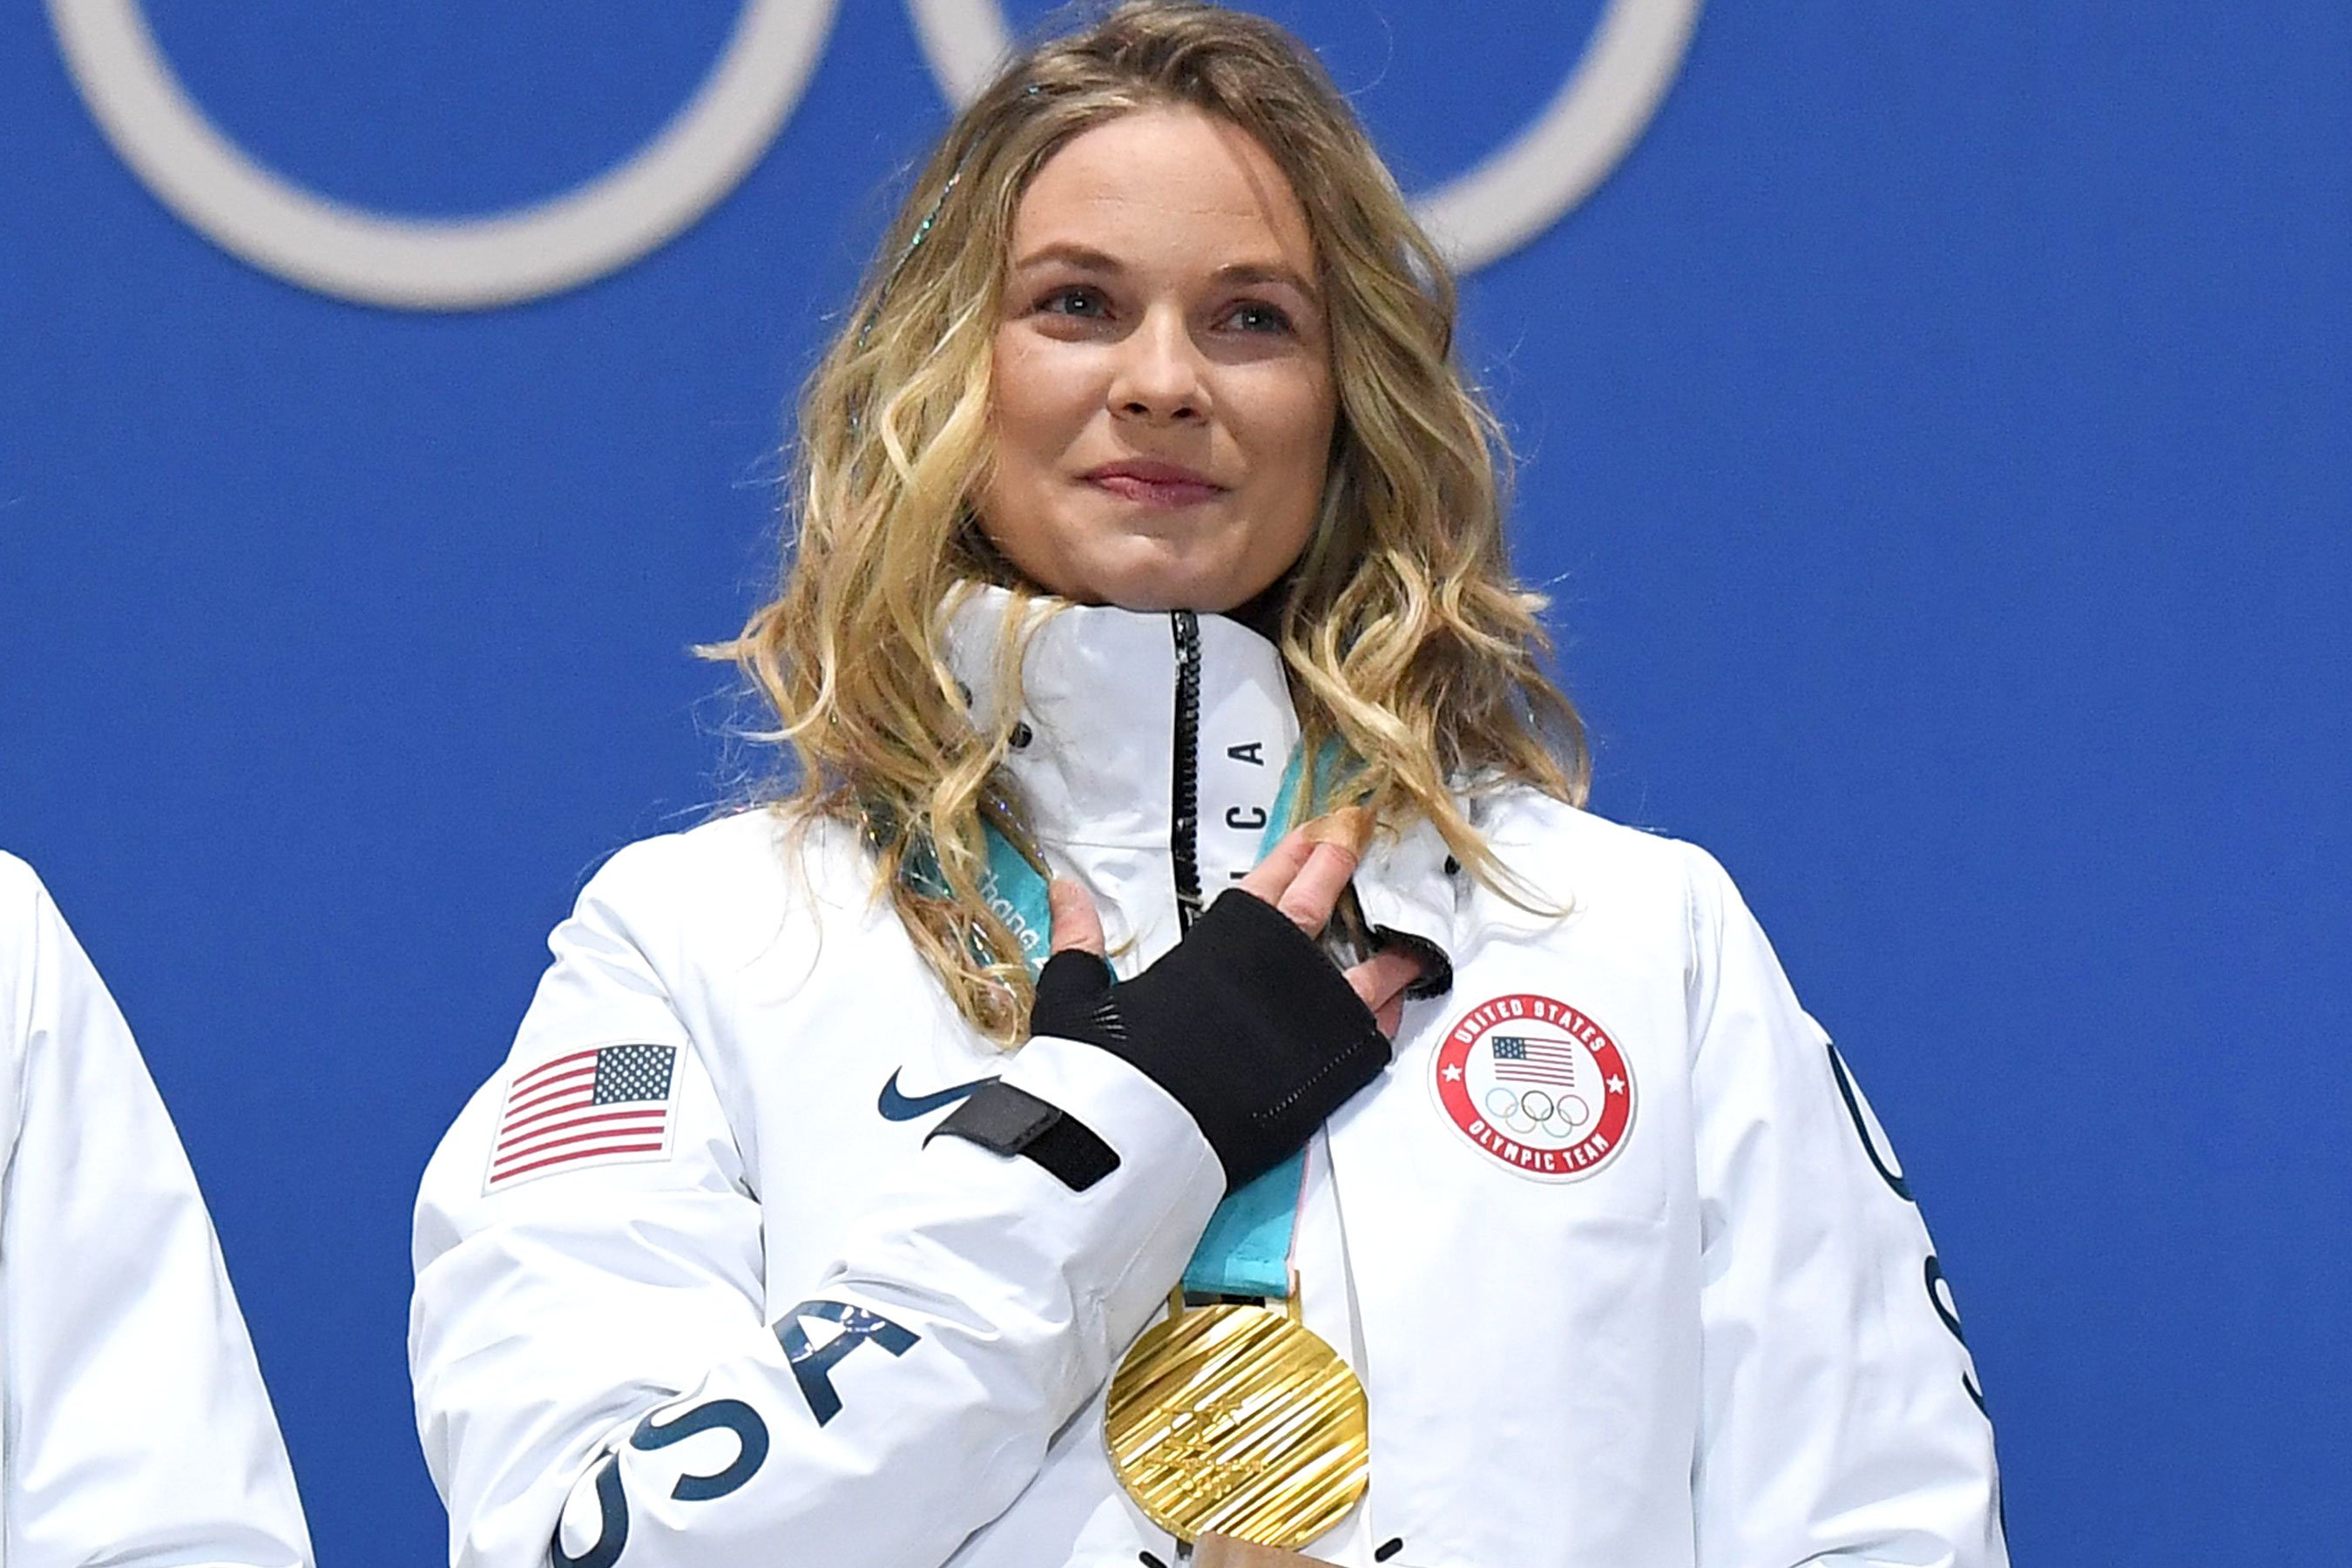 Olympics Closing Ceremony: Who is Jessie Diggins?